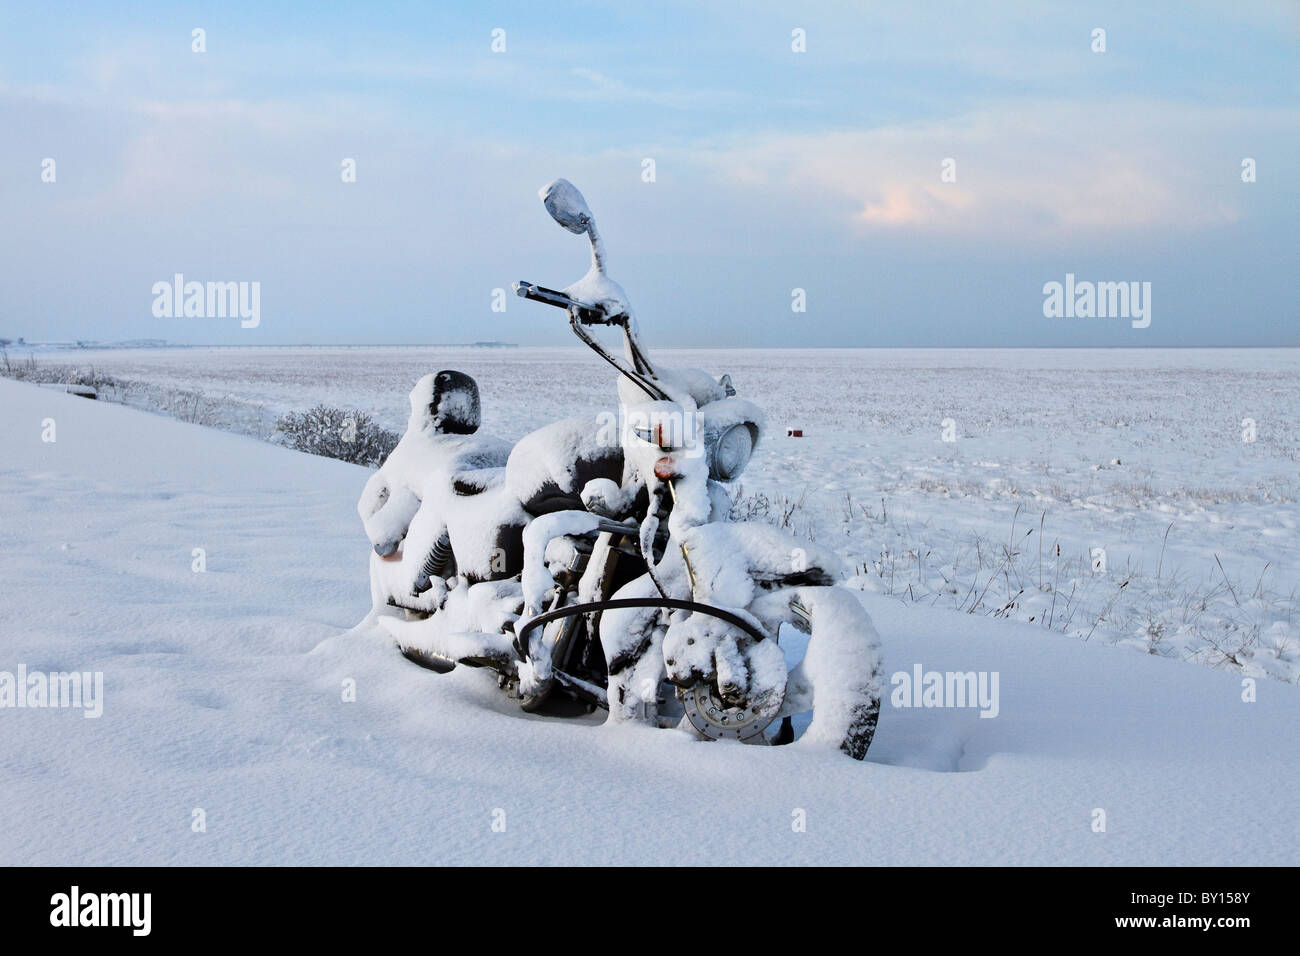 Snowy winter weather forces rider to abandoned Motorbike travel after Heavy Snowfall on the roads, 18th December, - Stock Image